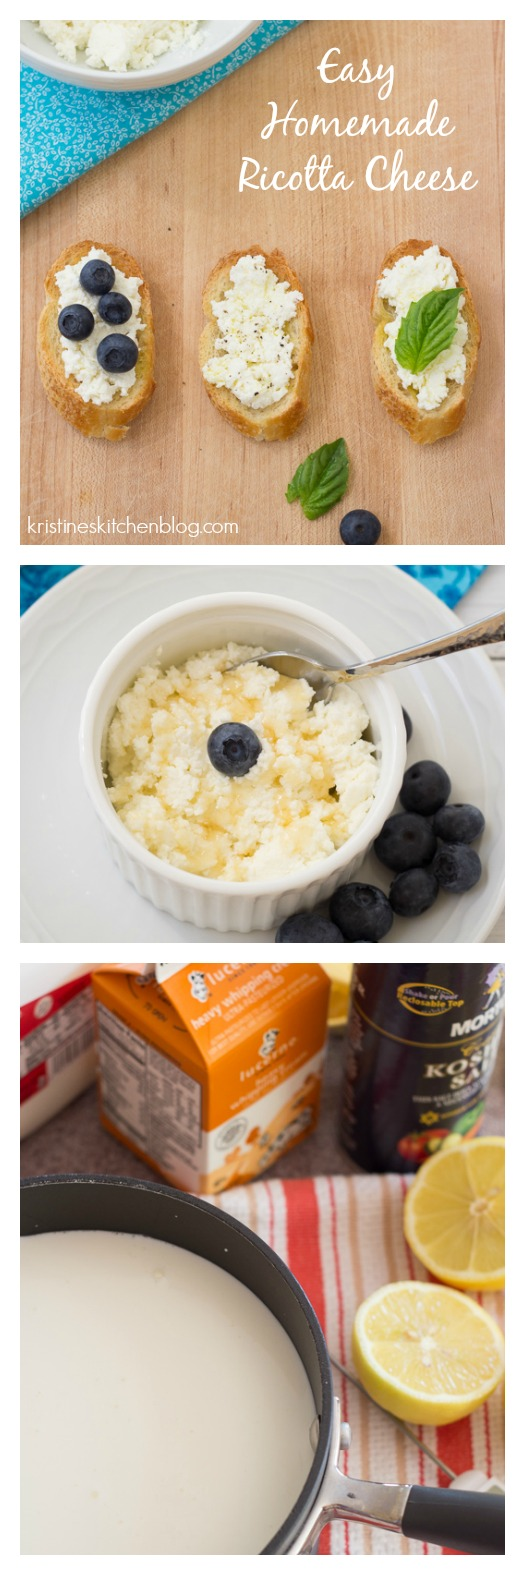 Easy Homemade Ricotta Cheese - I love this for snacking, appetizers, and lasagna!